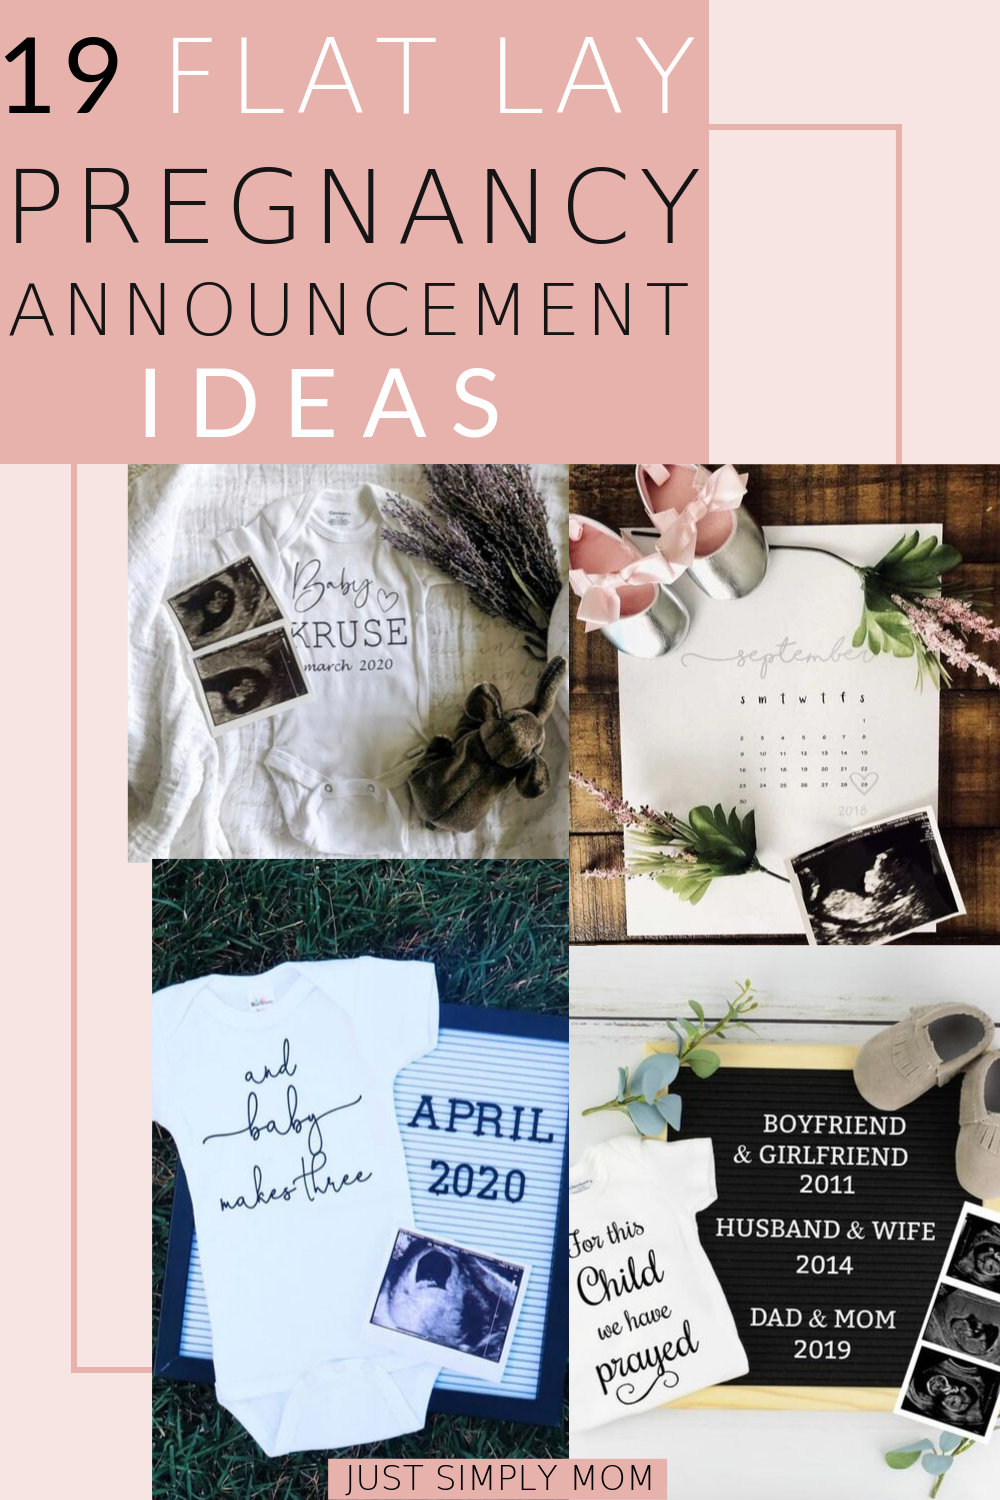 19 Beautiful Flat Lay Pregnancy Announcements